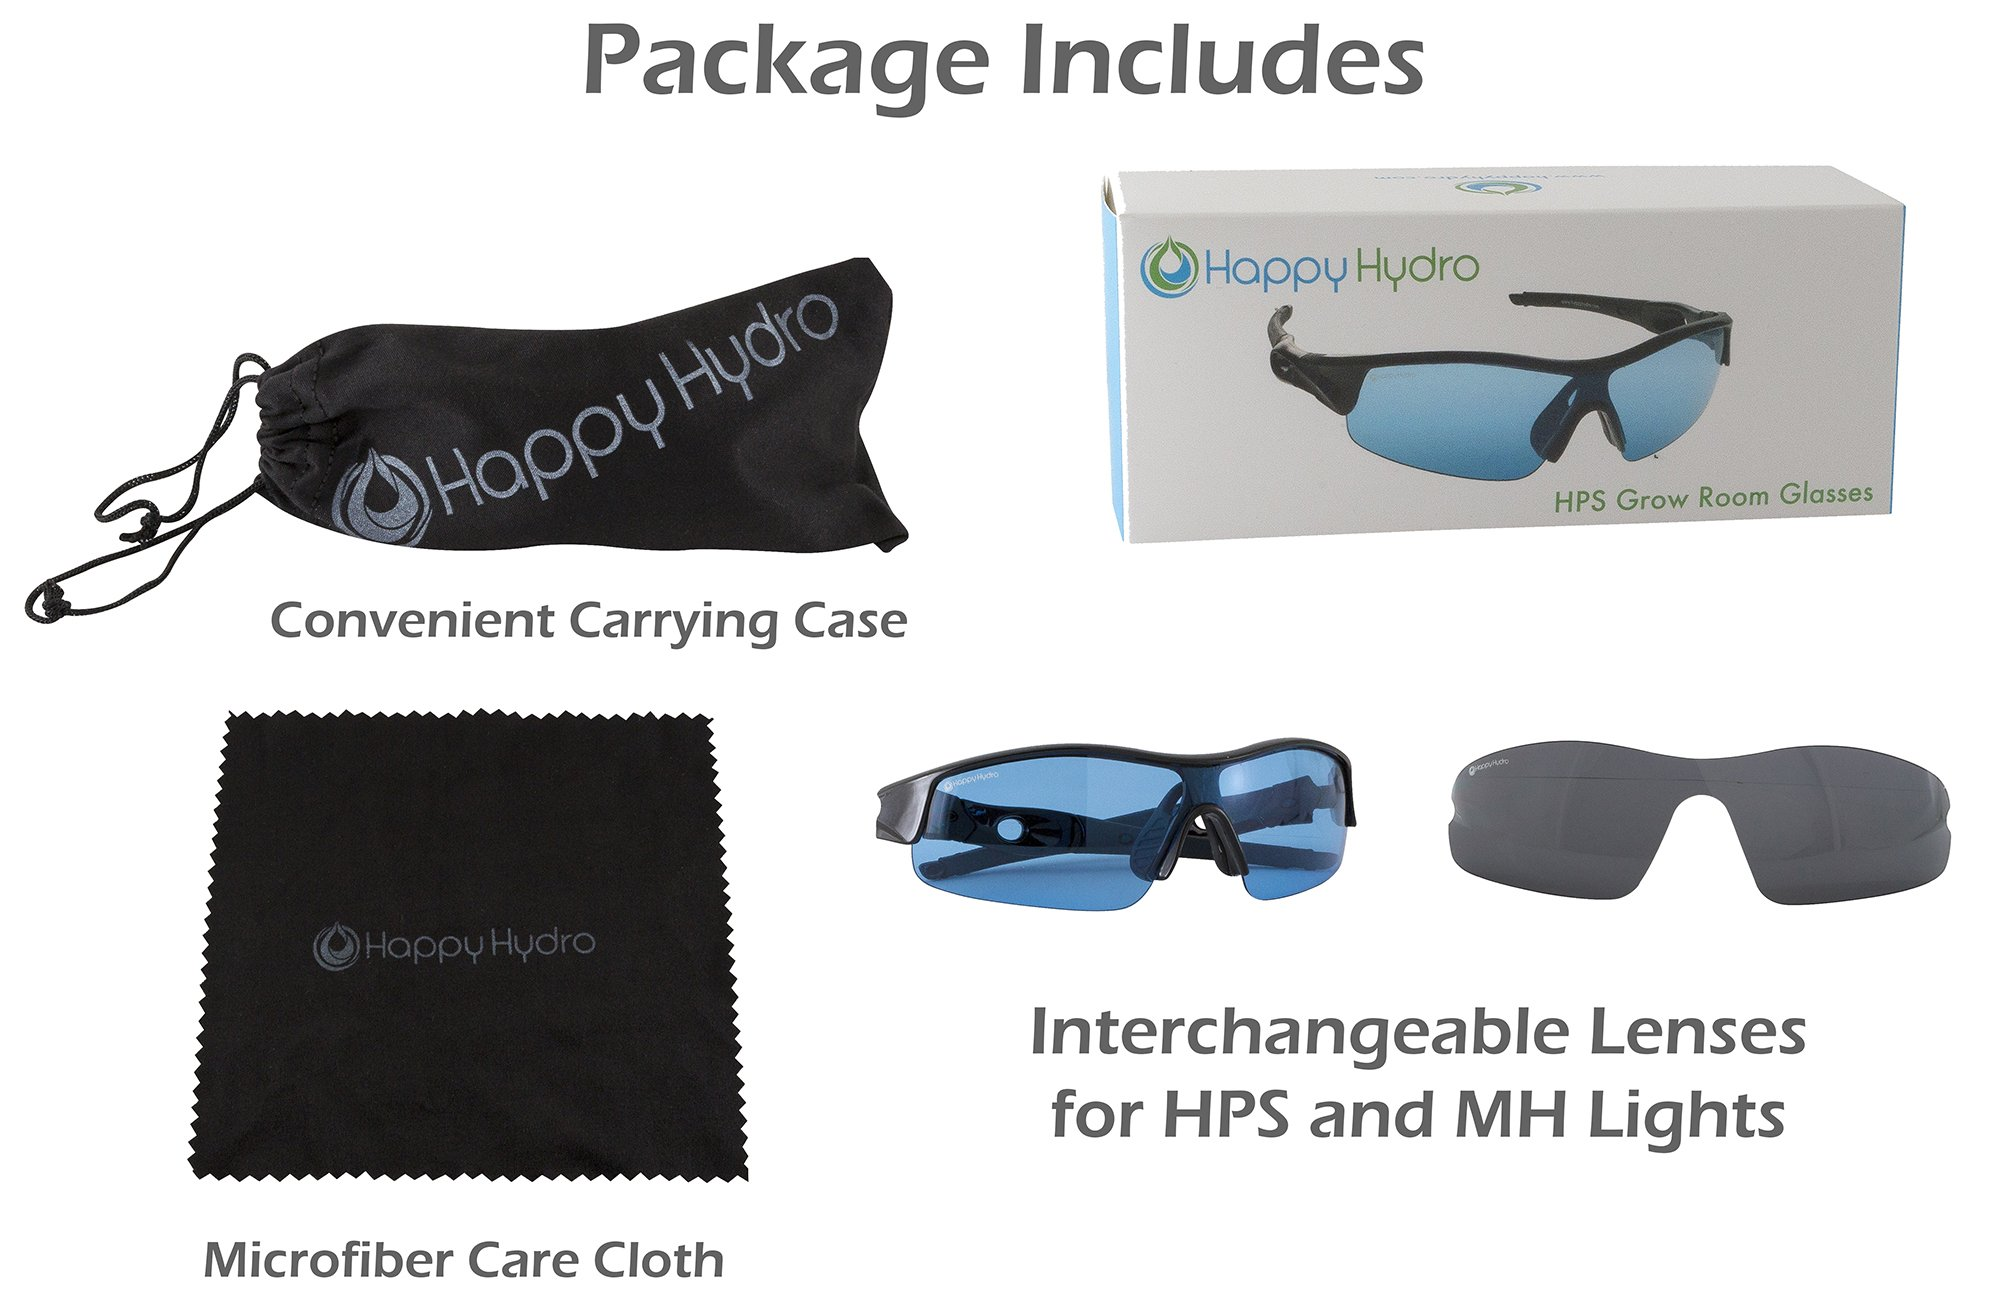 Happy Hydro Grow Room Glasses with Interchangeable Anti-Glare UV Lenses for HPS & MH Lights by Happy Hydro (Image #2)